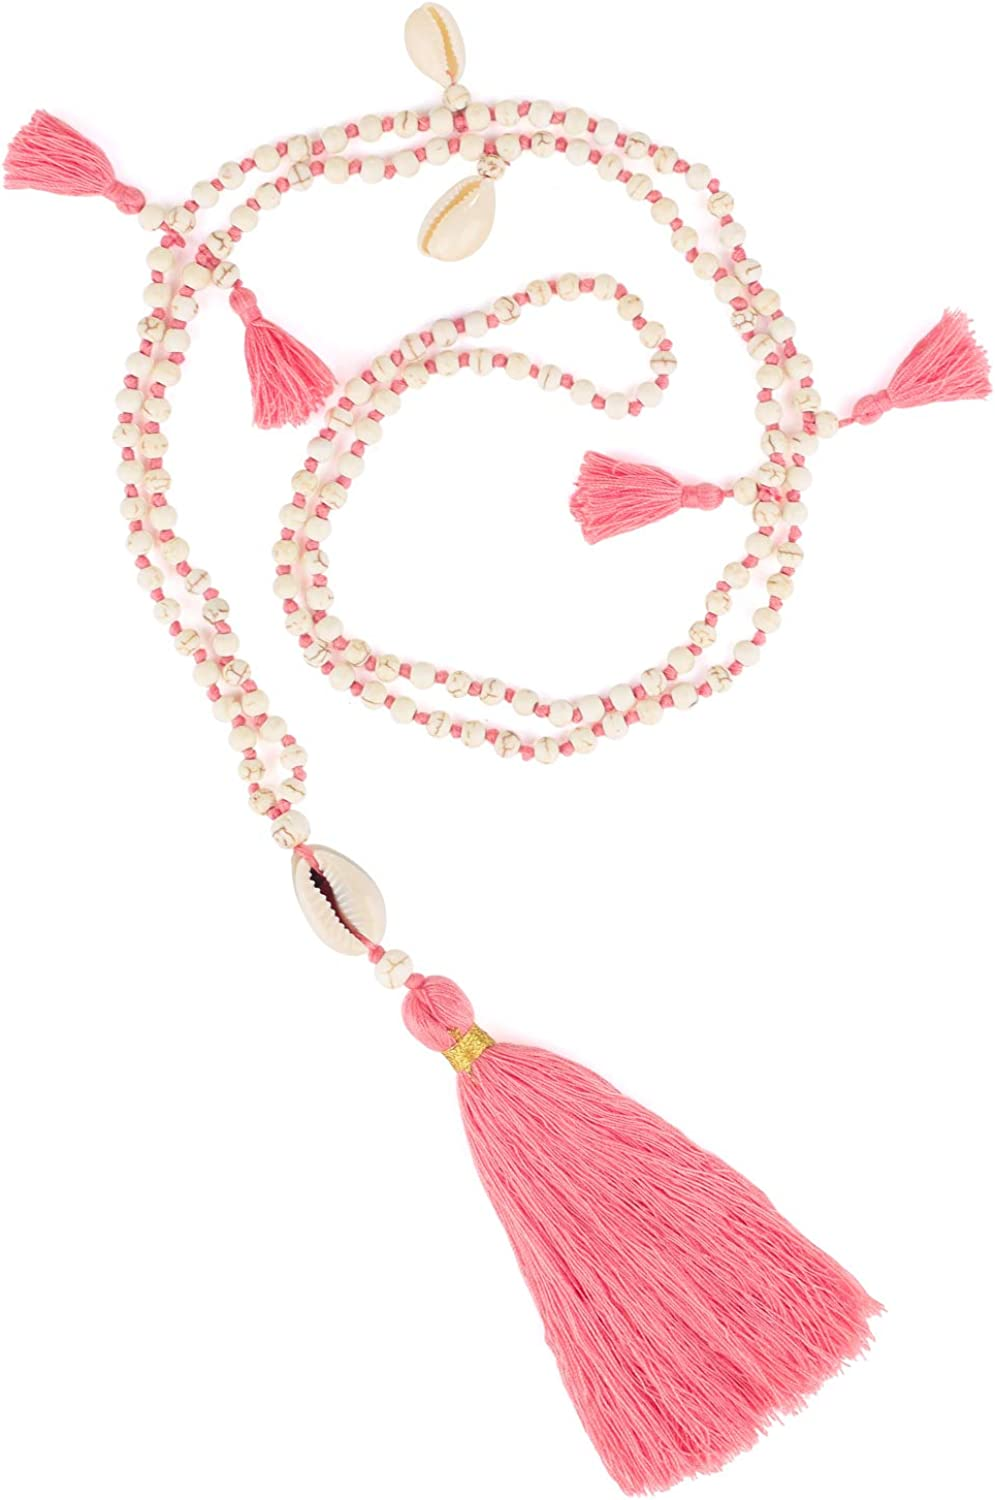 KELITCH Long Tassel Pendant Necklace Handmade Bohe Tiered Layered Shell Charm Y Necklaces Nice Gift for Women, Girls Pink